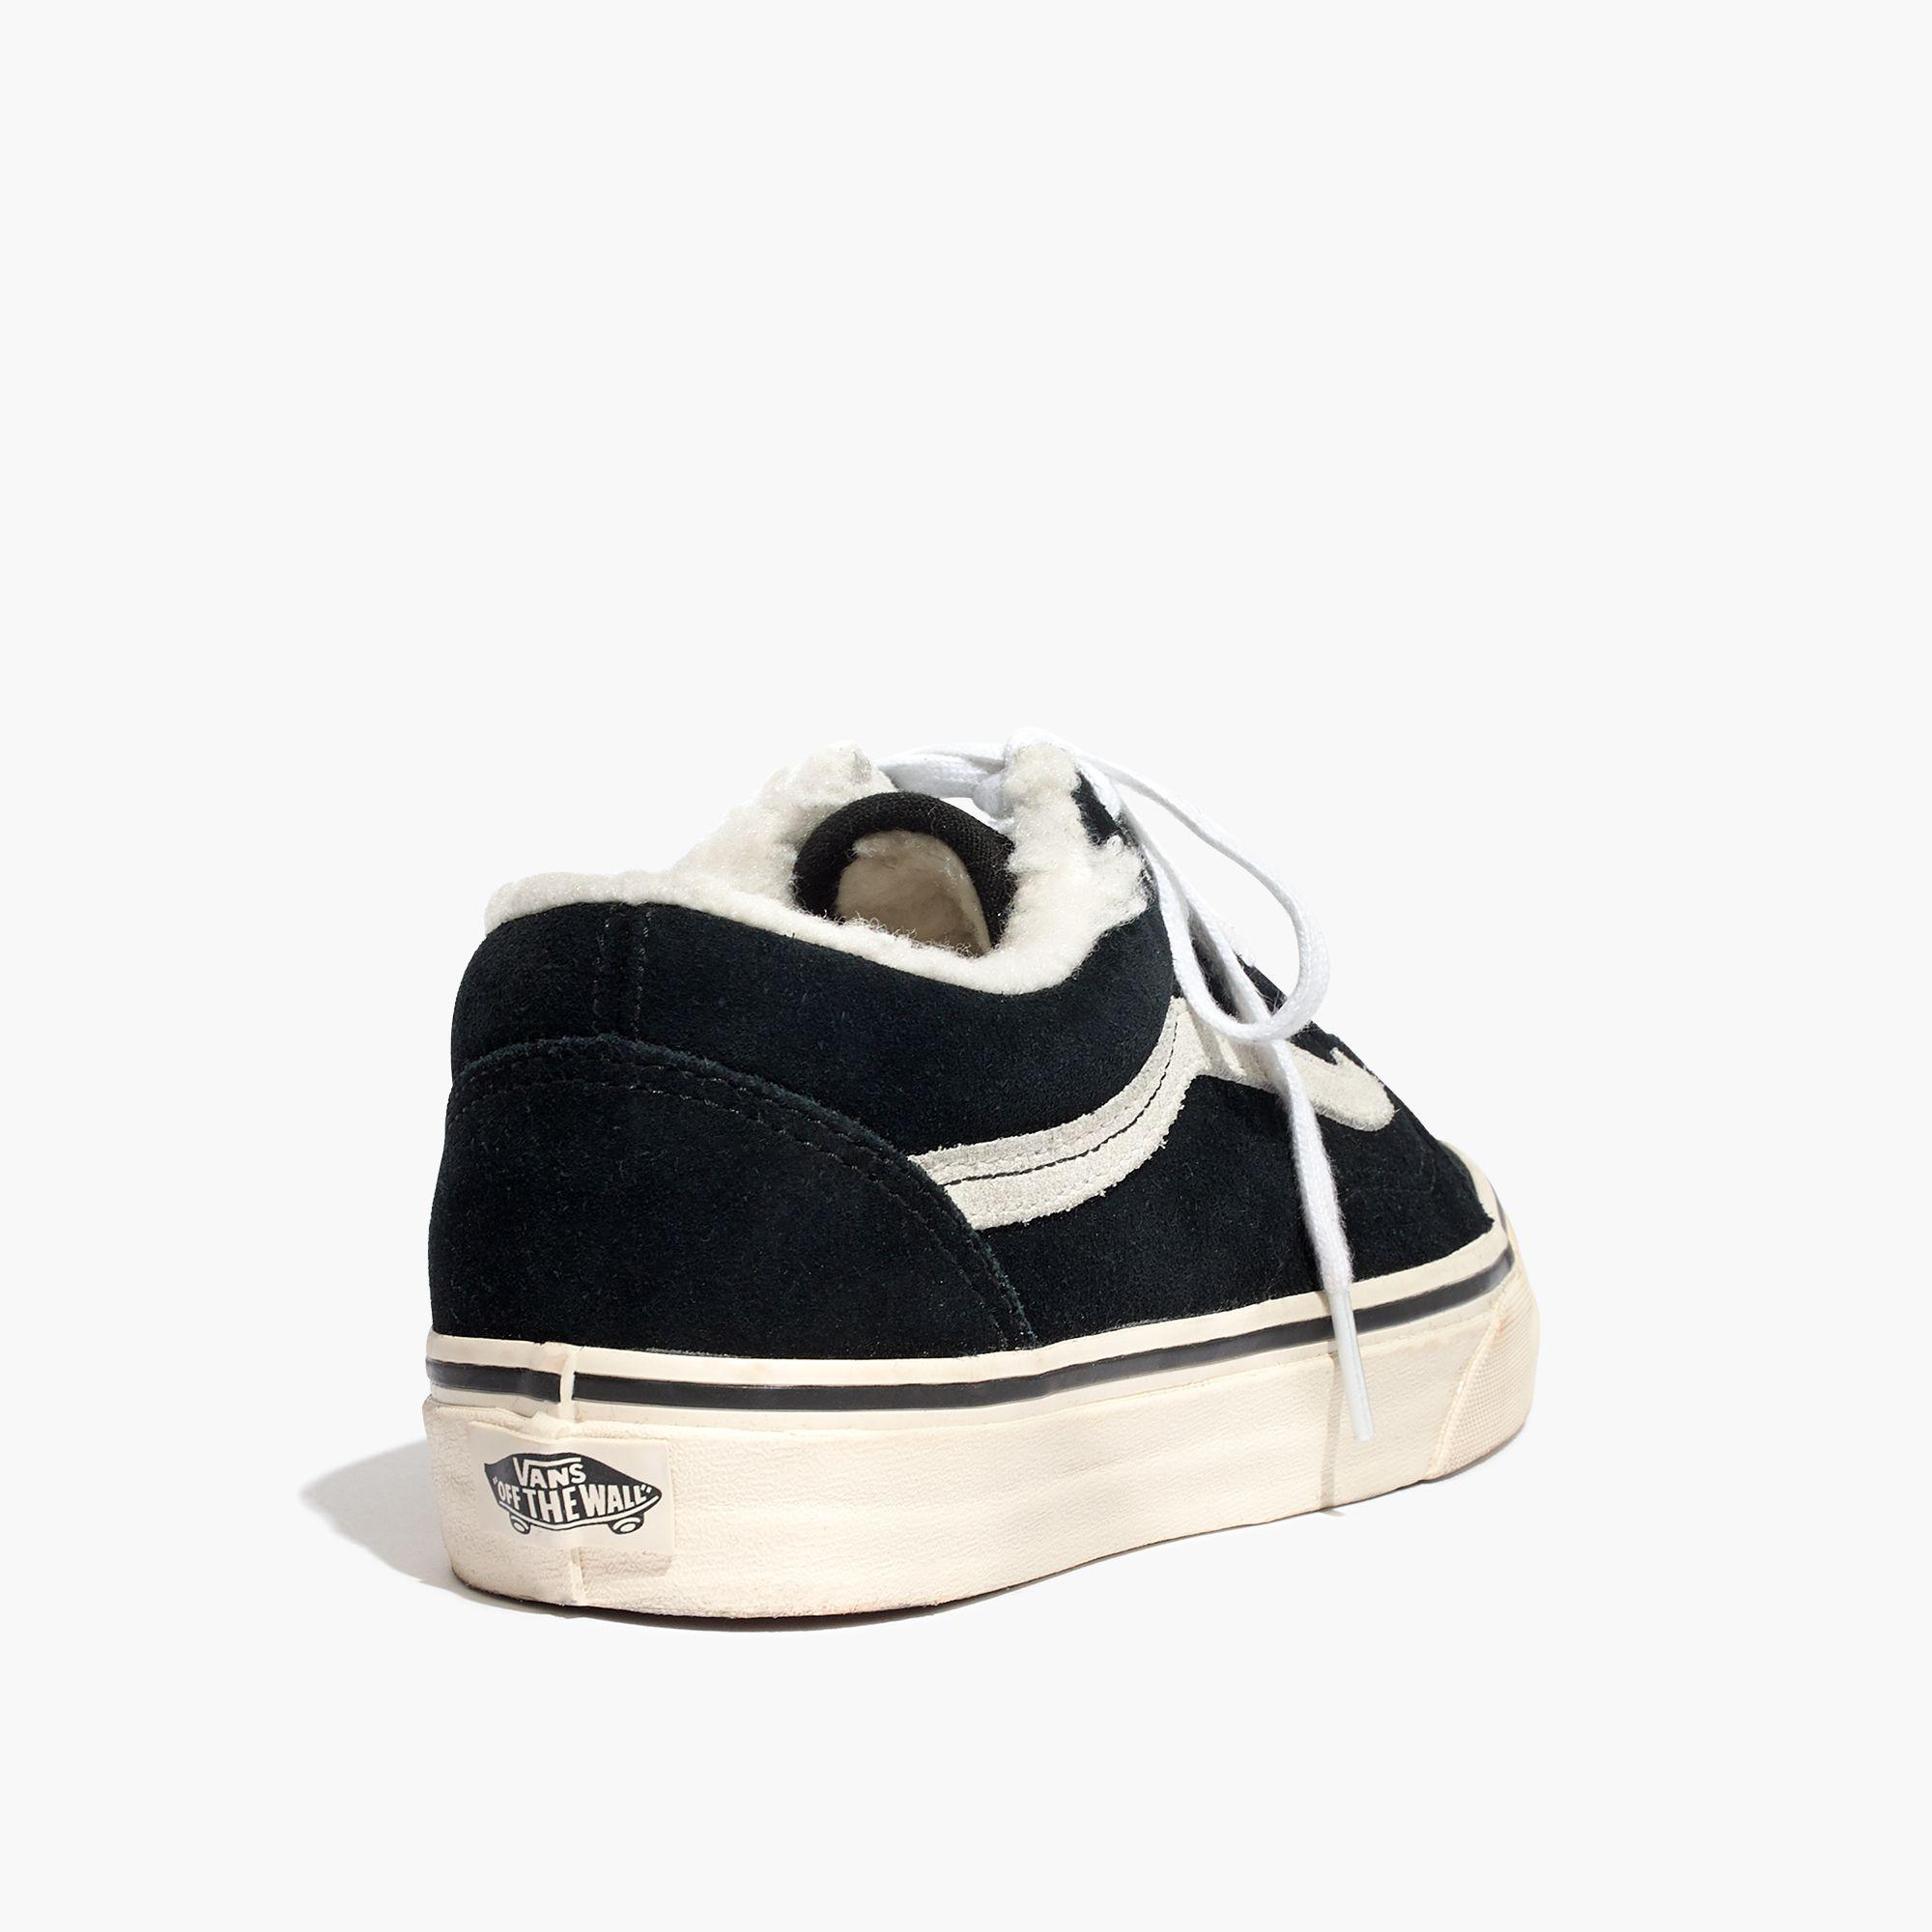 2a9f78bee7e Lyst - Madewell X Vans® Unisex Old Skool Sneakers In Suede And ...